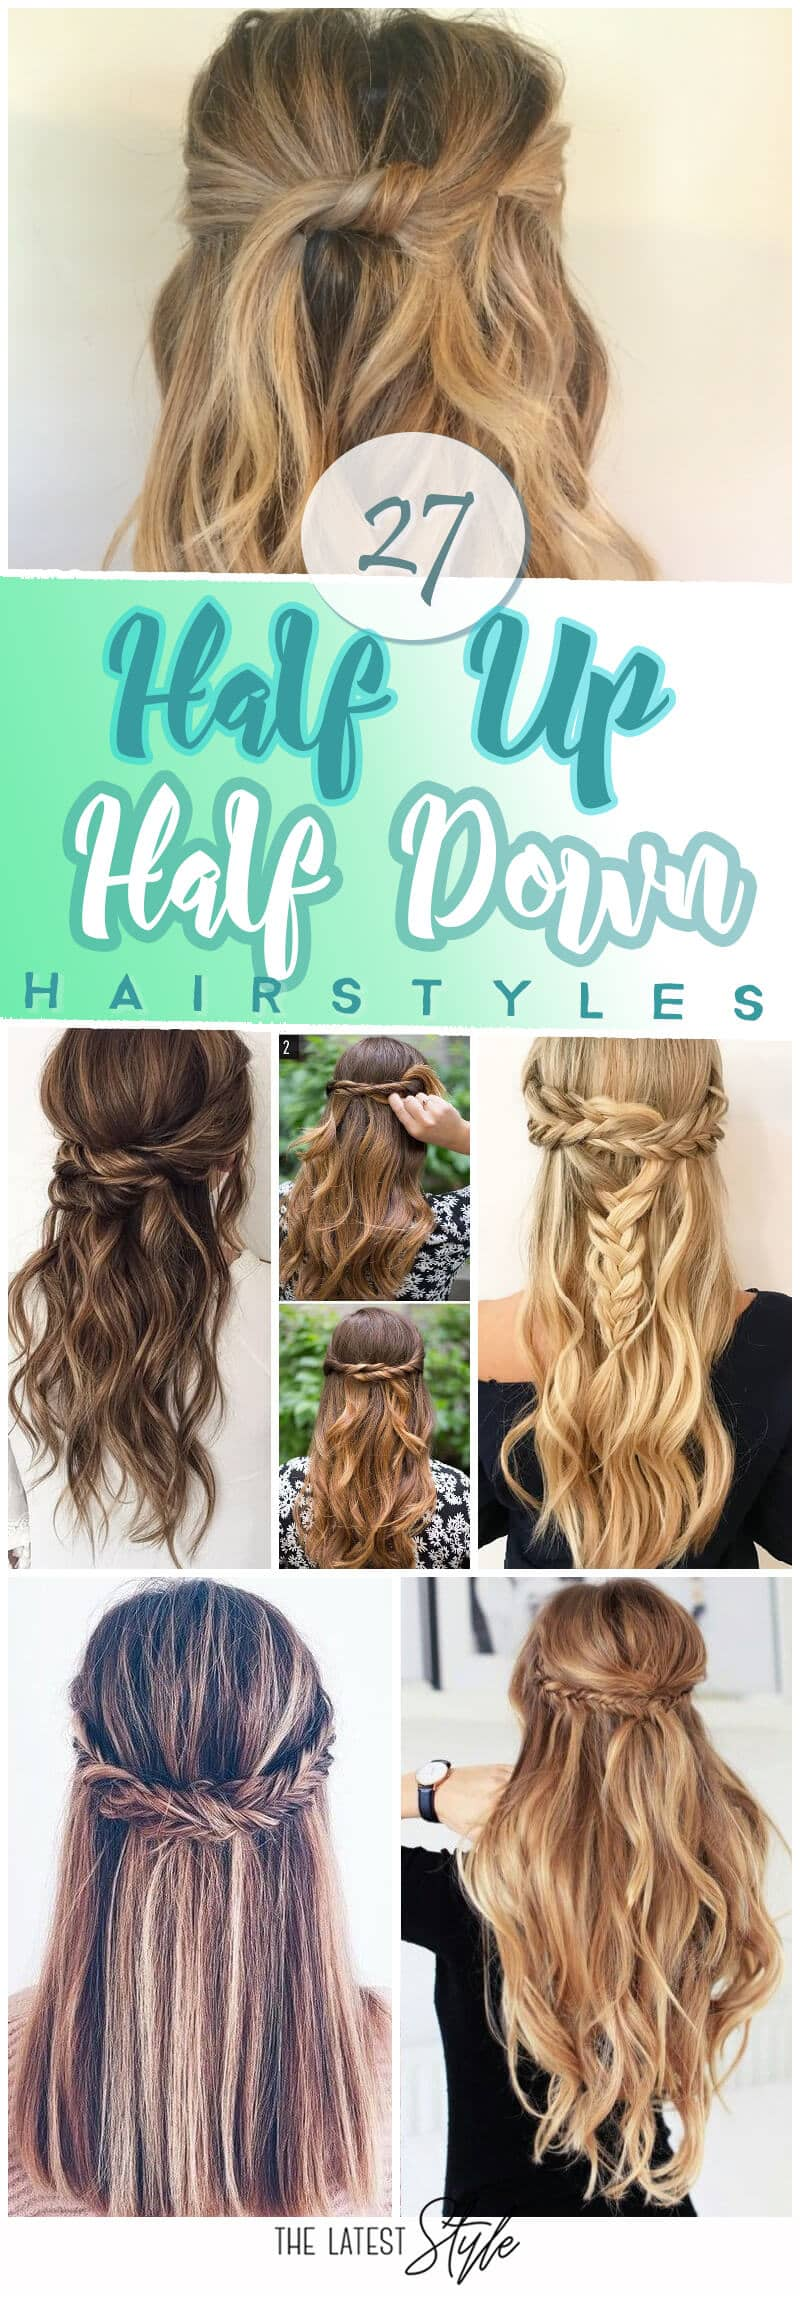 27 Magnificently Gorgeous Half-up Half-down Hairstyles